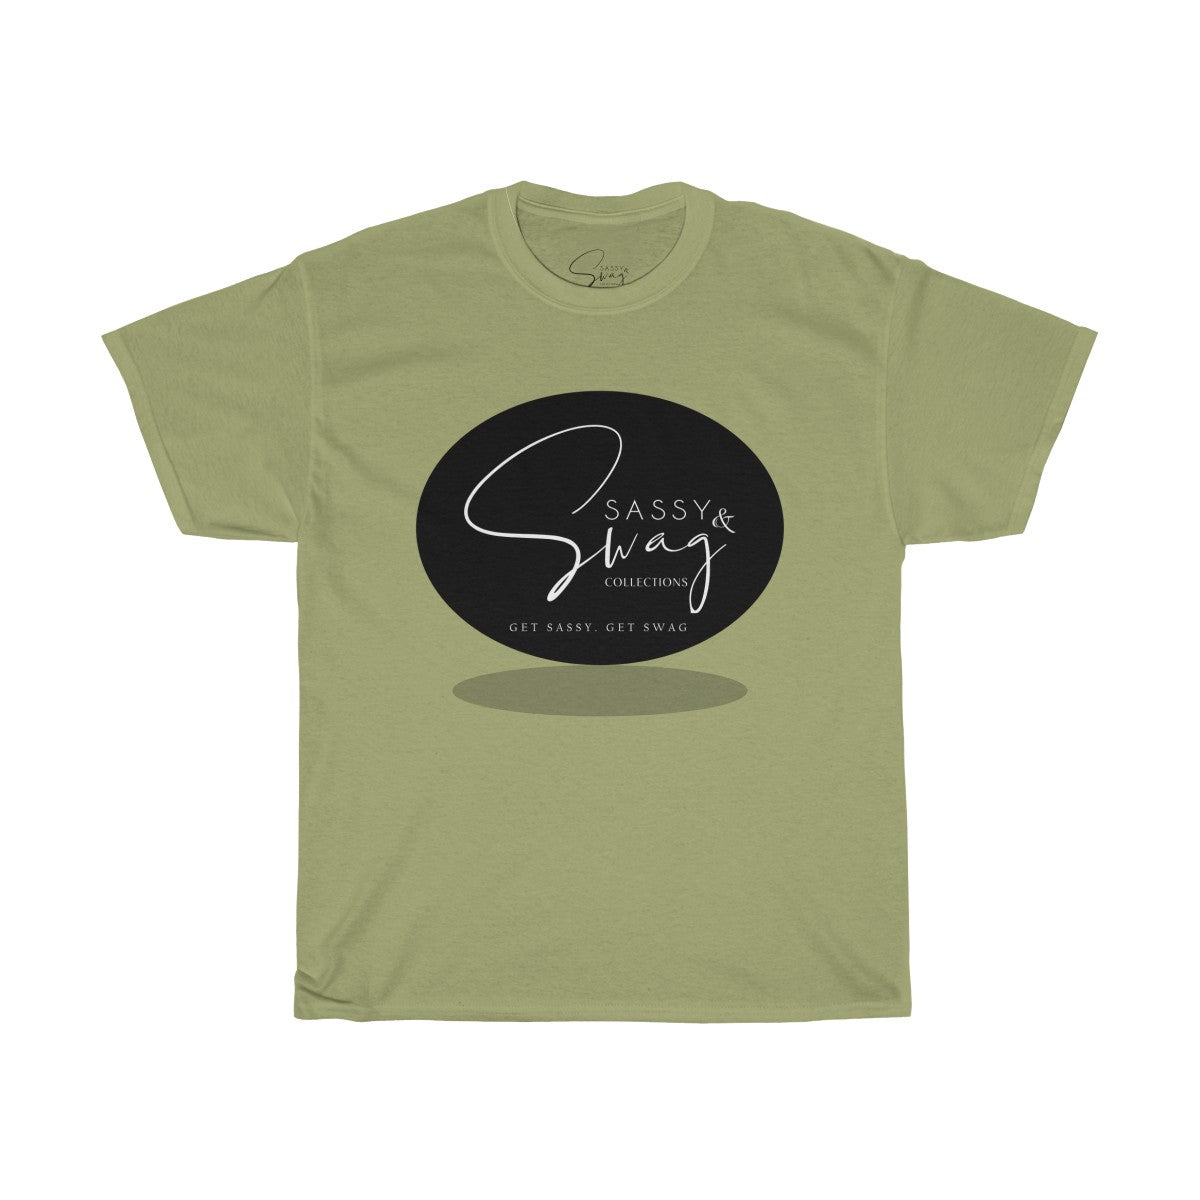 Sassy & Swag Collections Unisex Heavy Cotton Tee